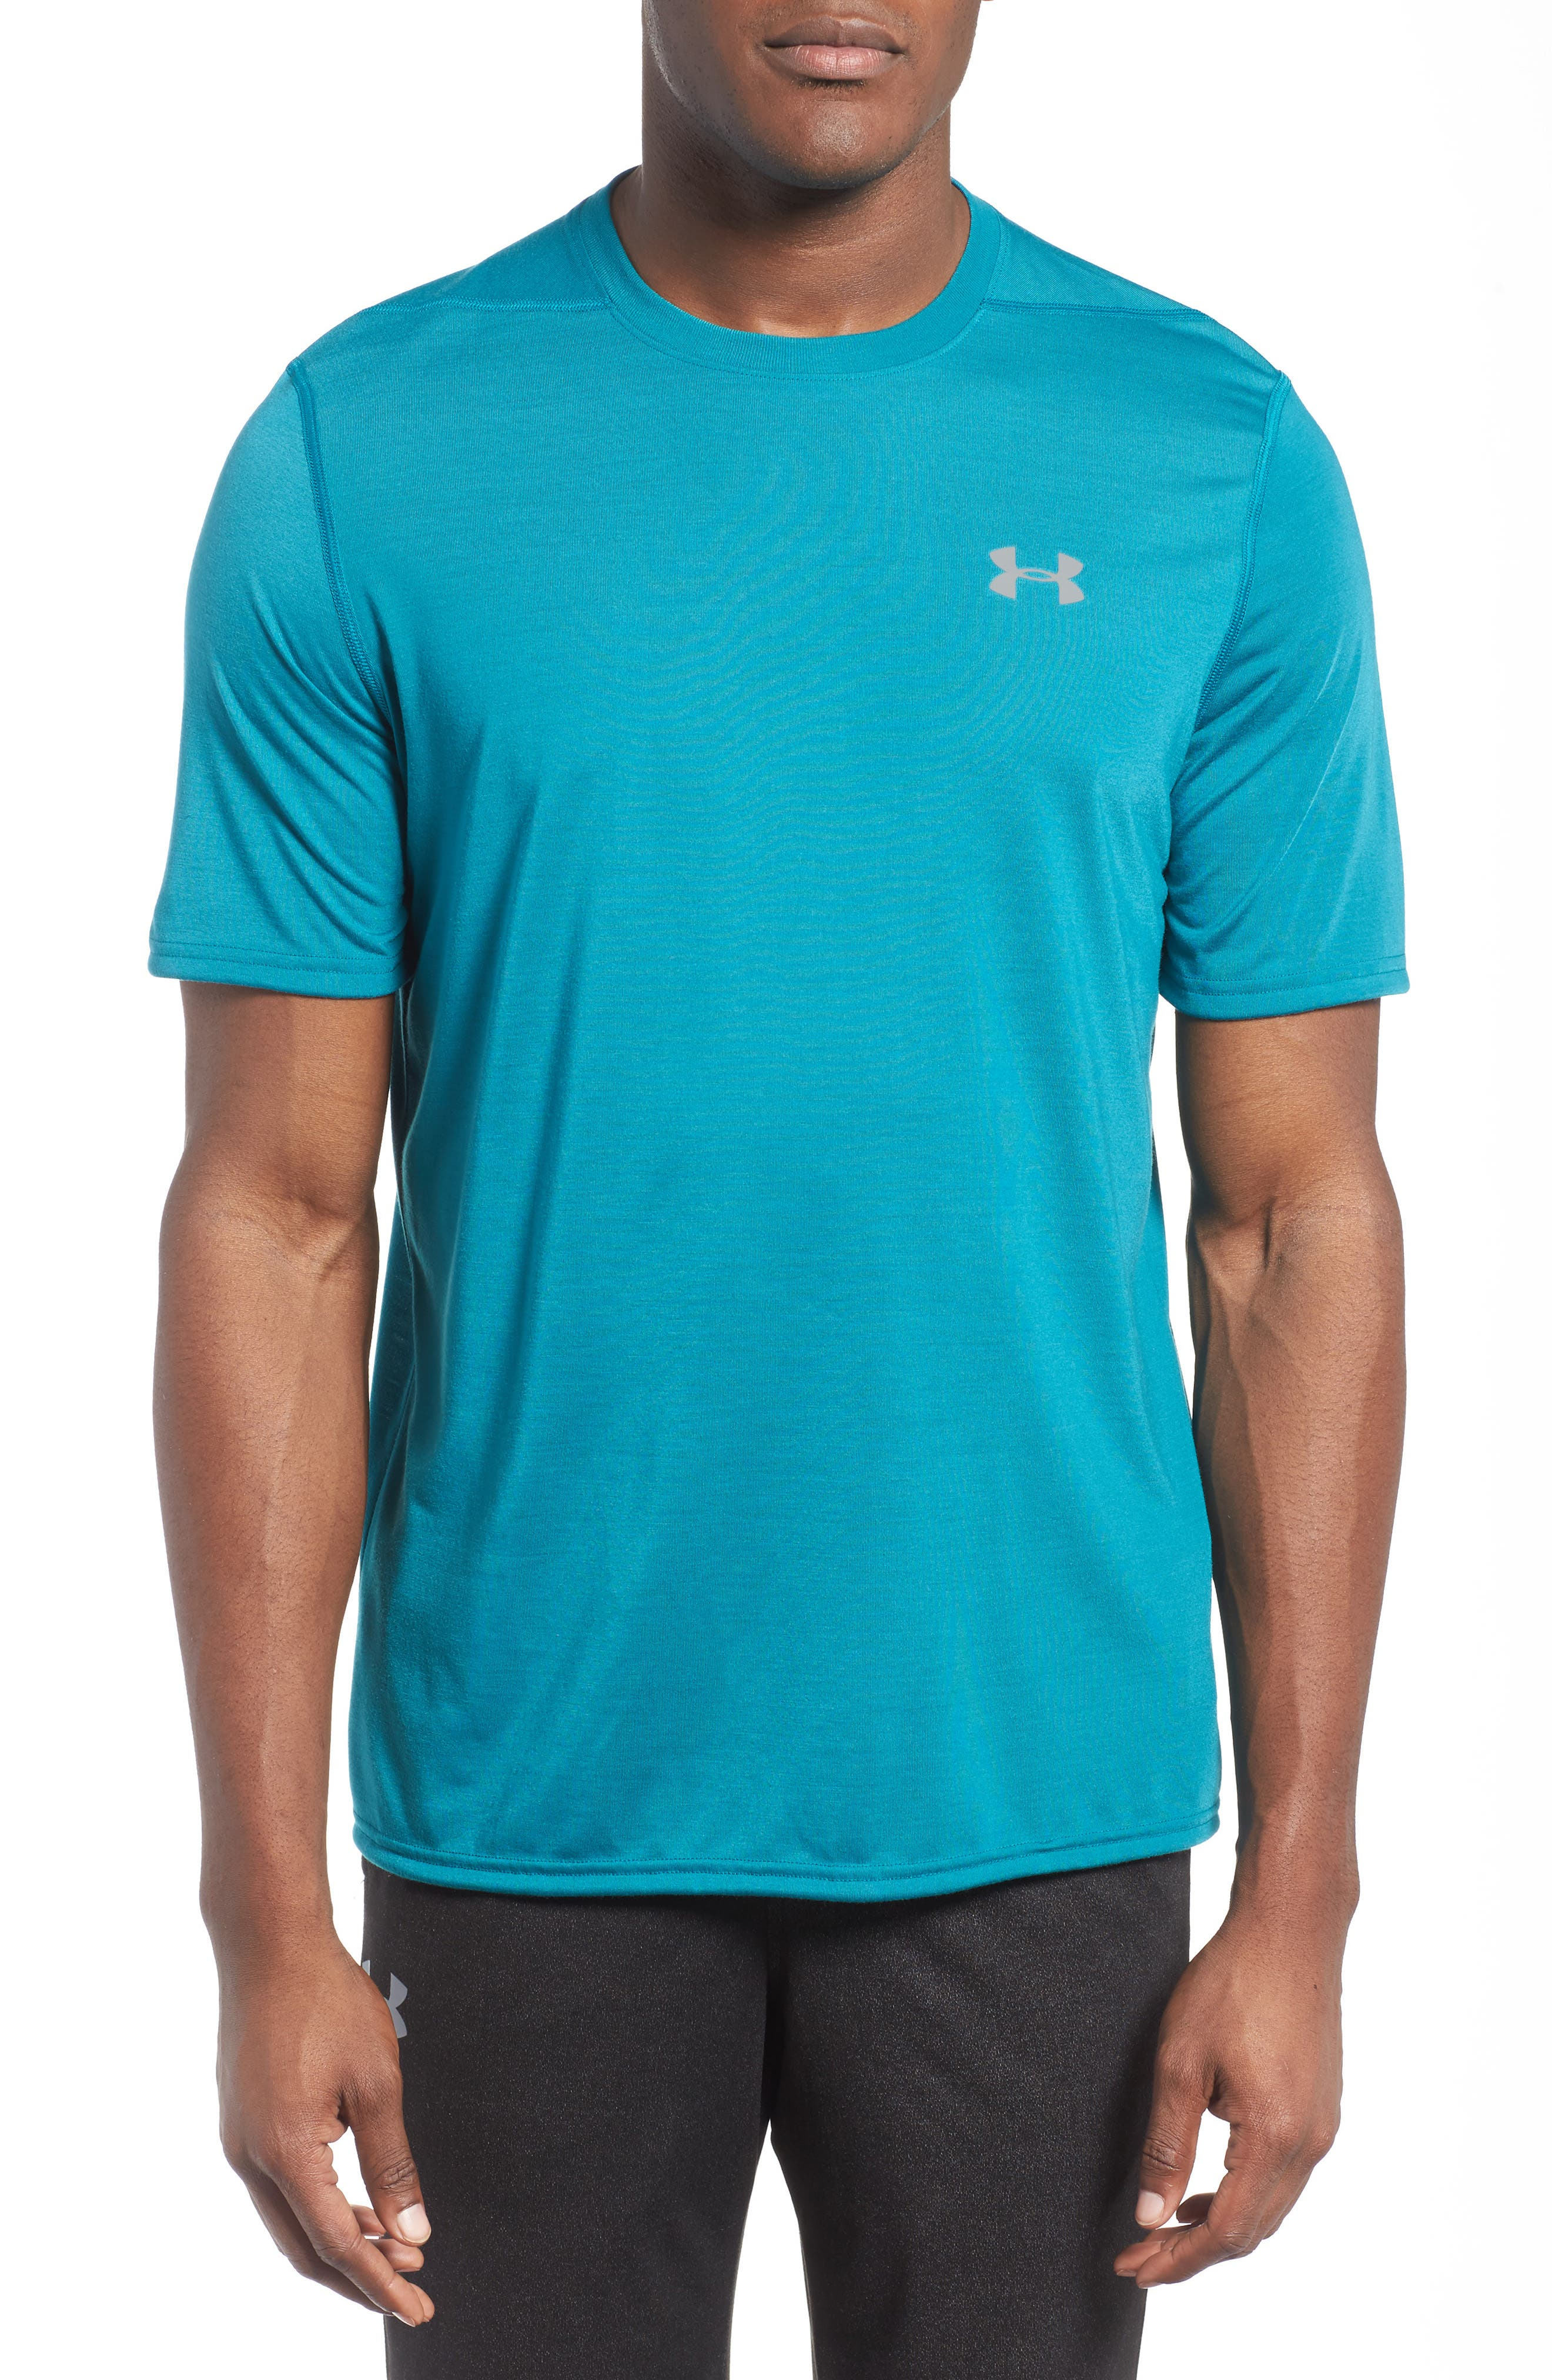 Main Image - Under Armour Regular Fit Threadborne T-Shirt